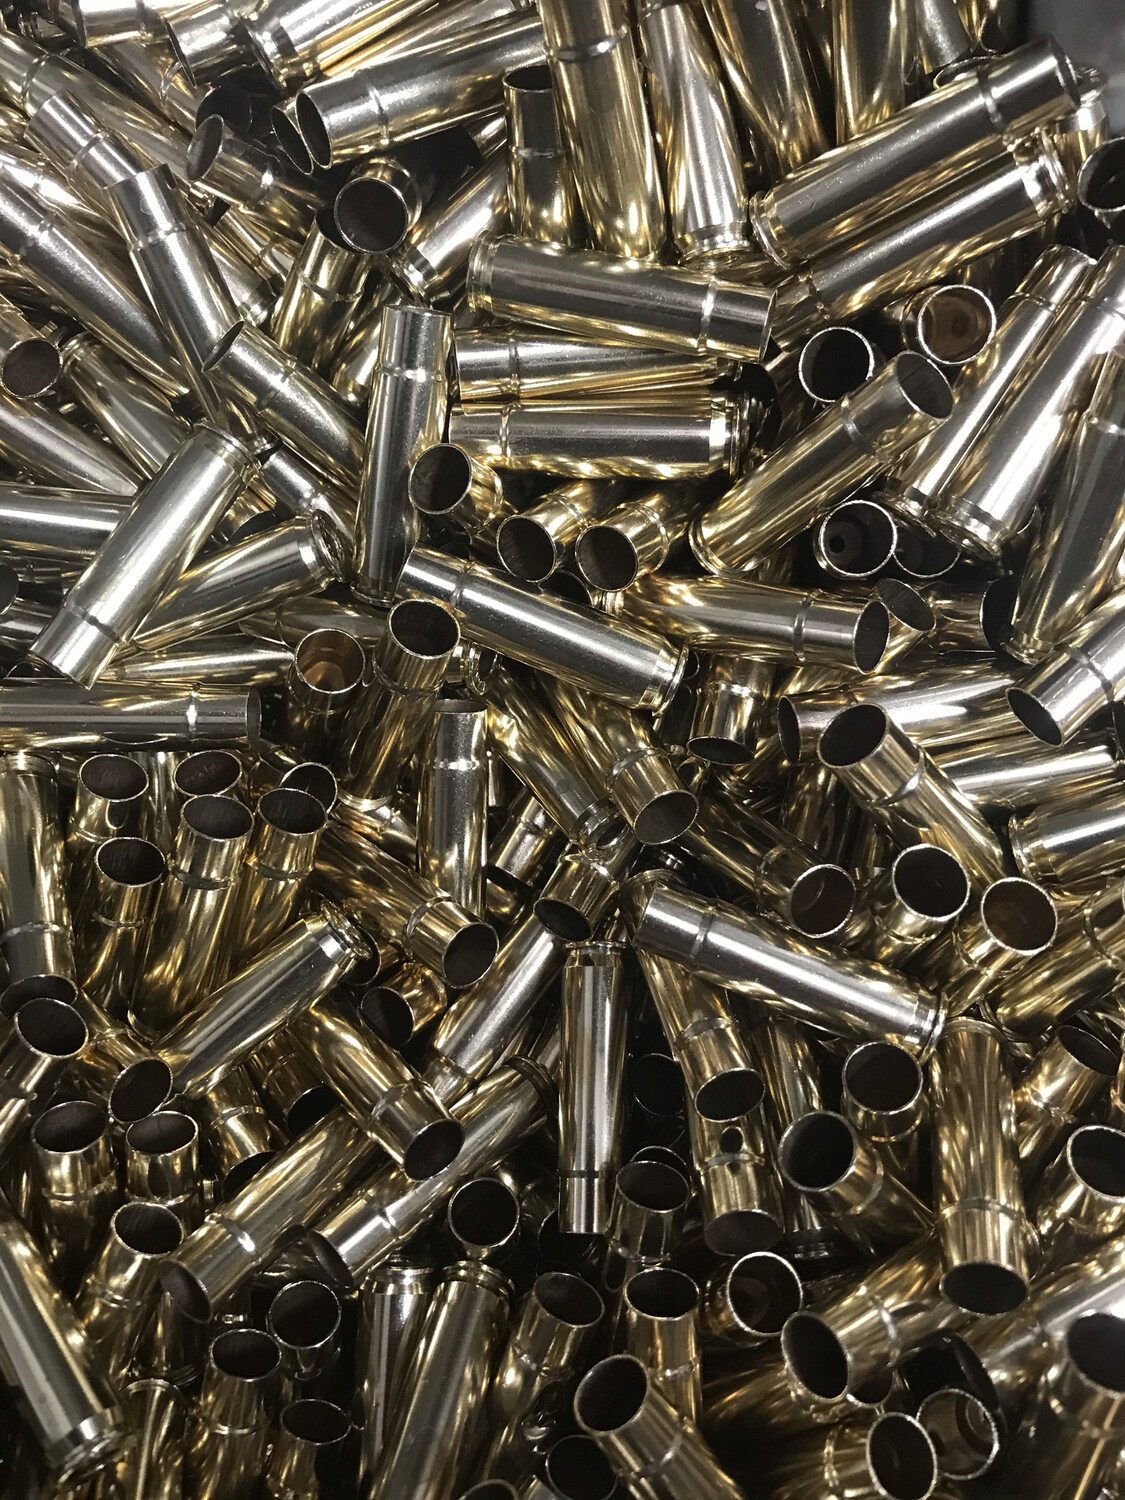 ONCE FIRED 300 BLACK OUT BRASS- 250